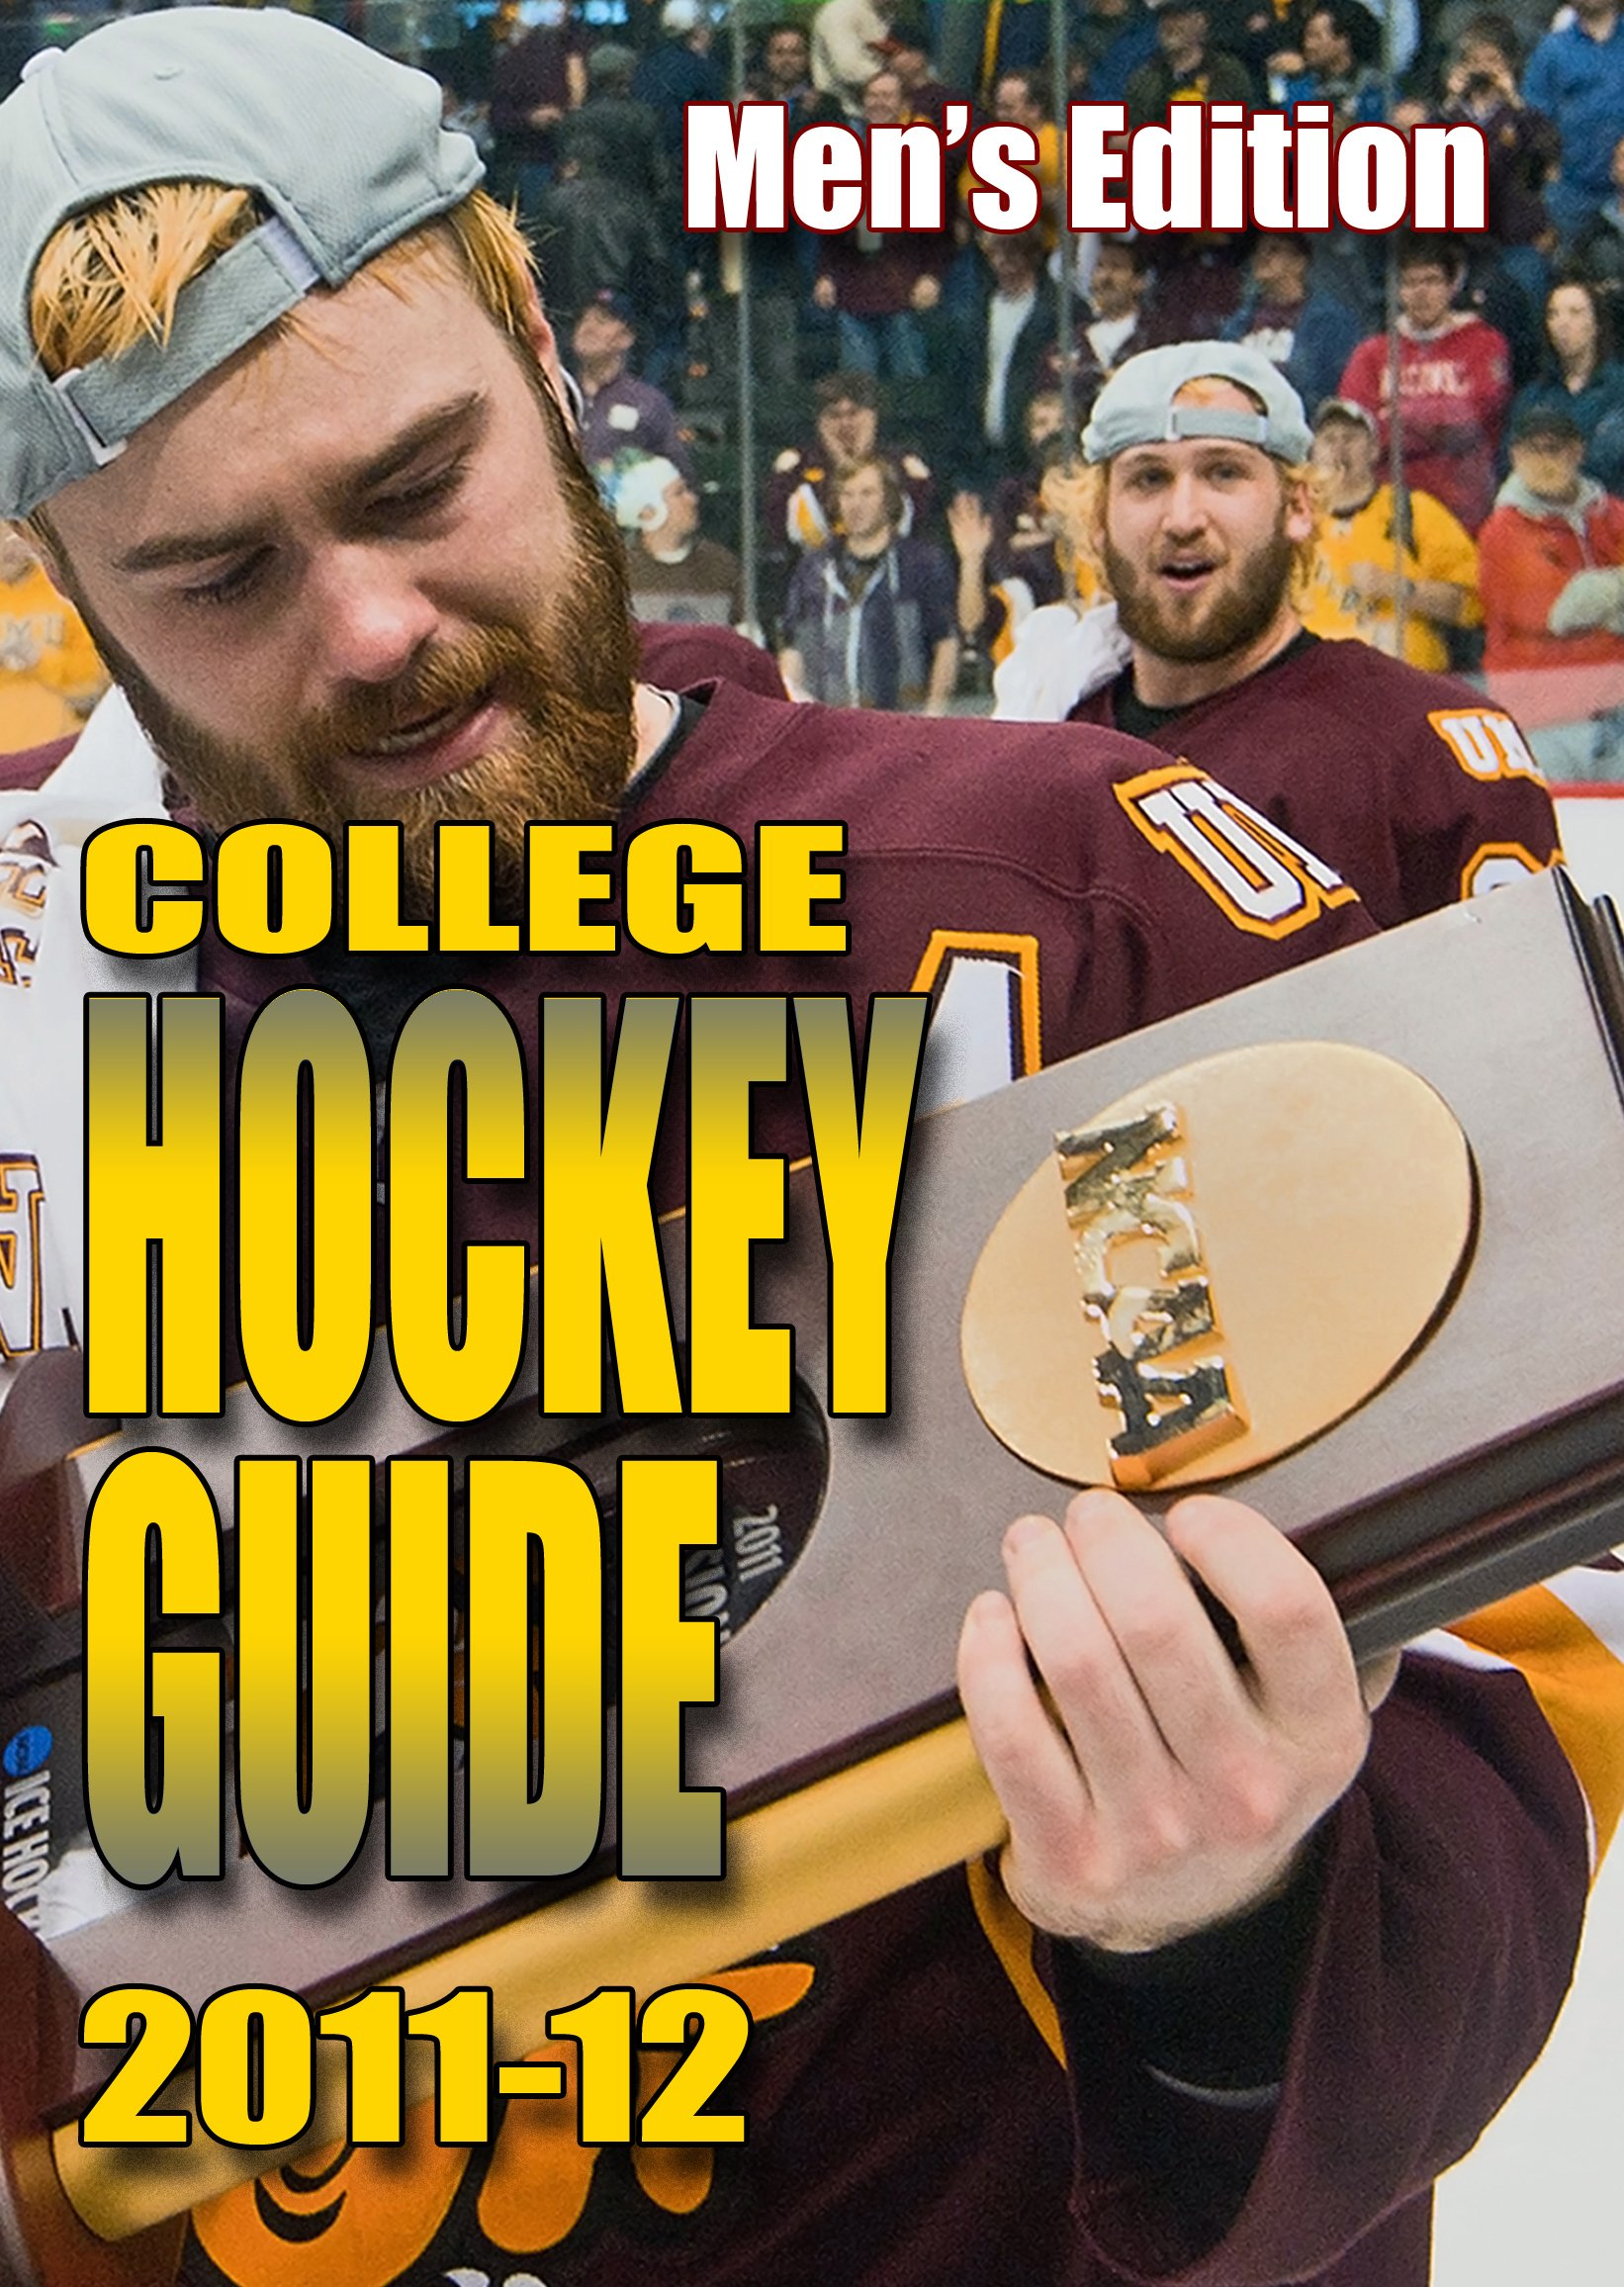 Download College Hockey Guide Men's Edition 2011-12 pdf epub